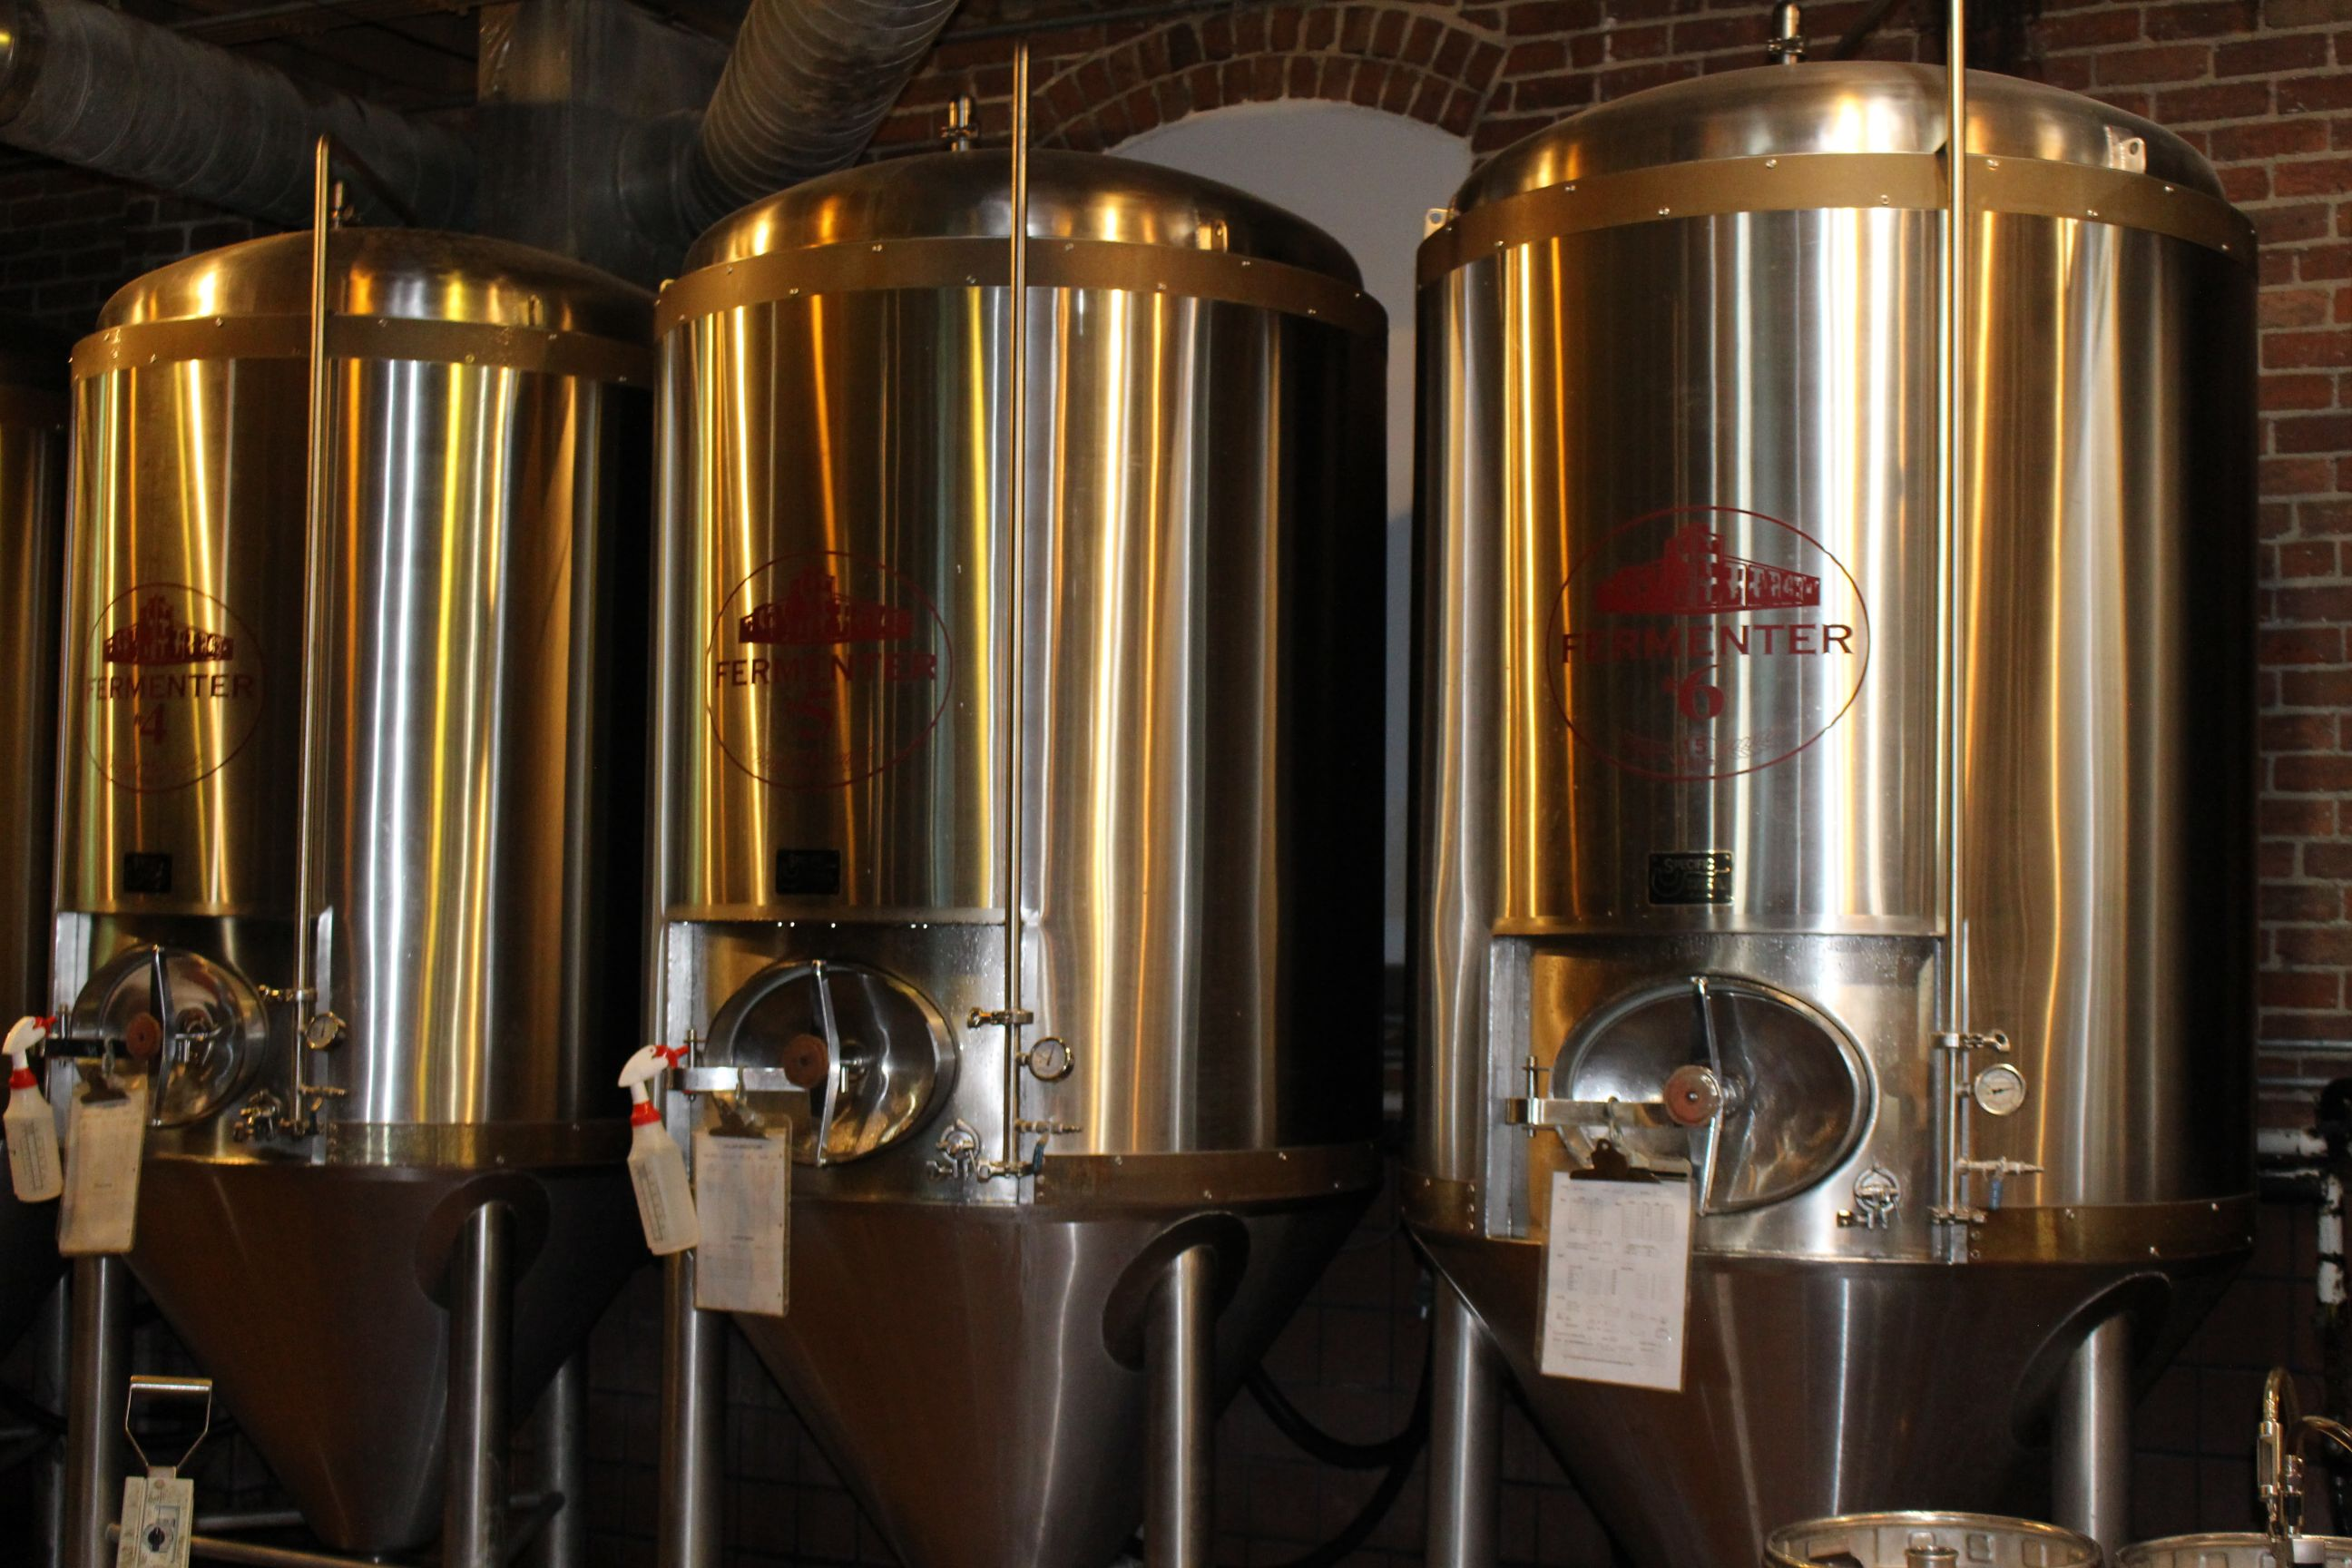 kegs for brewing beer